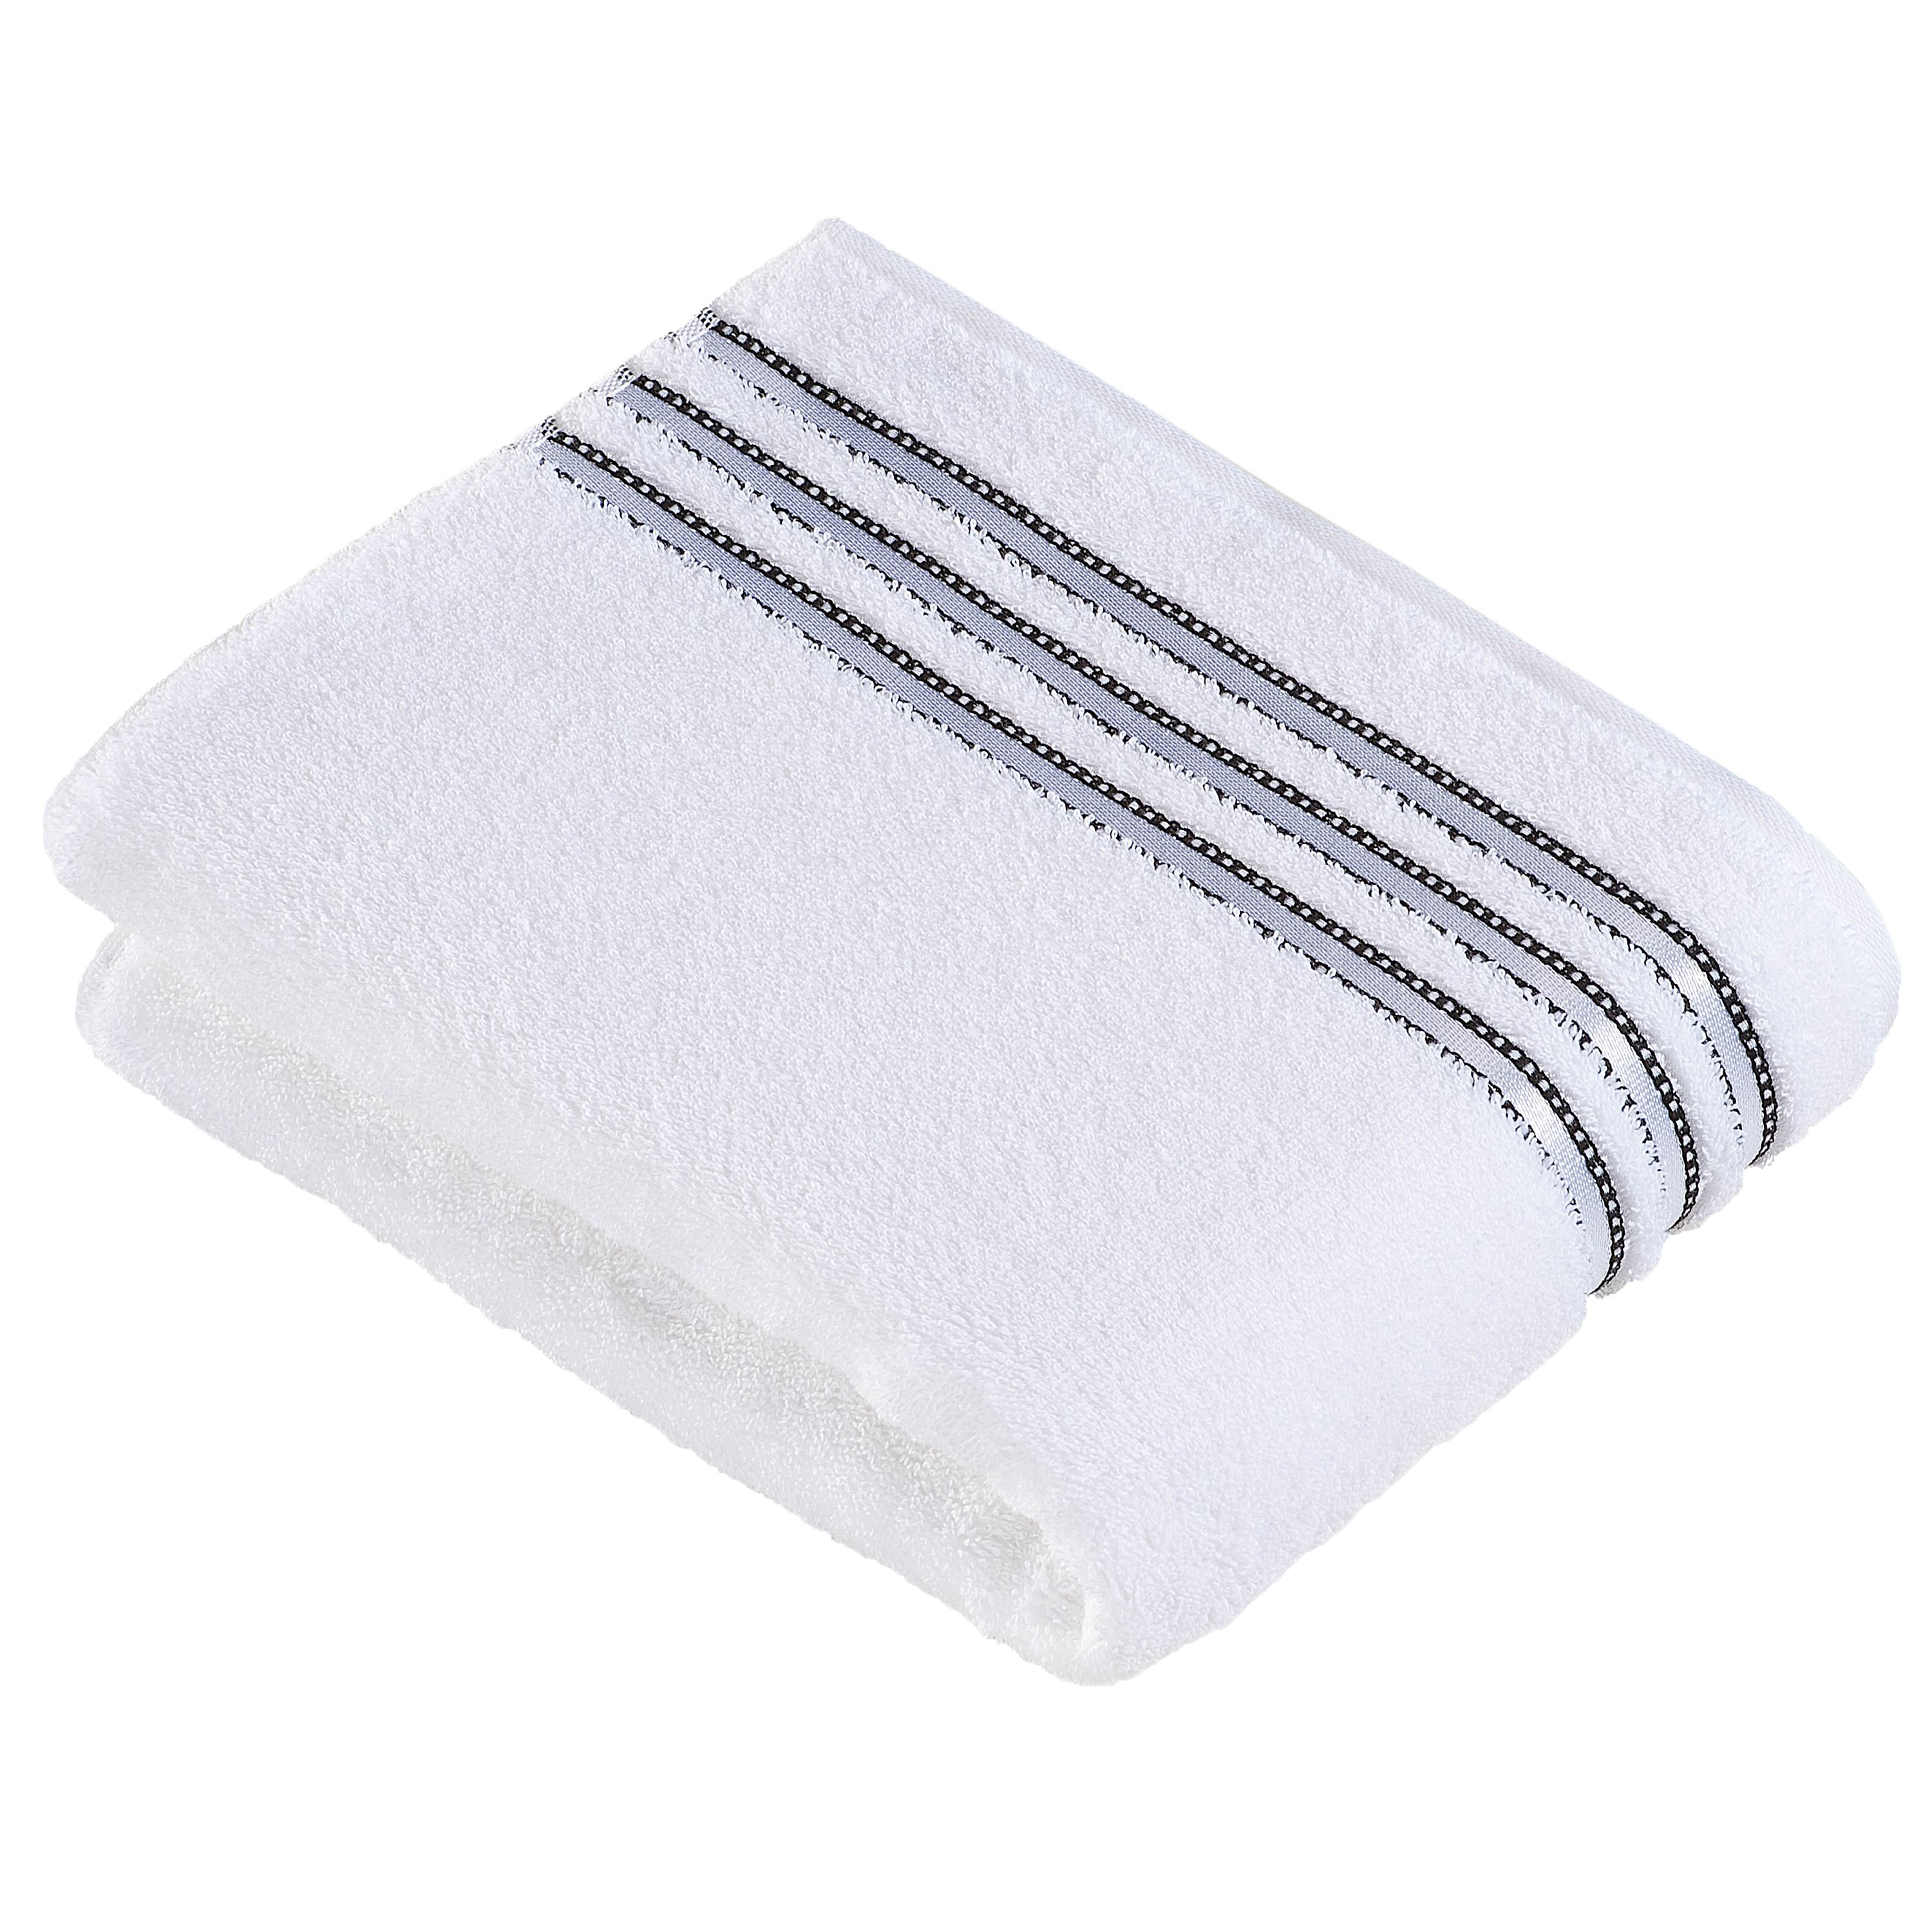 Cult de lux white towel range